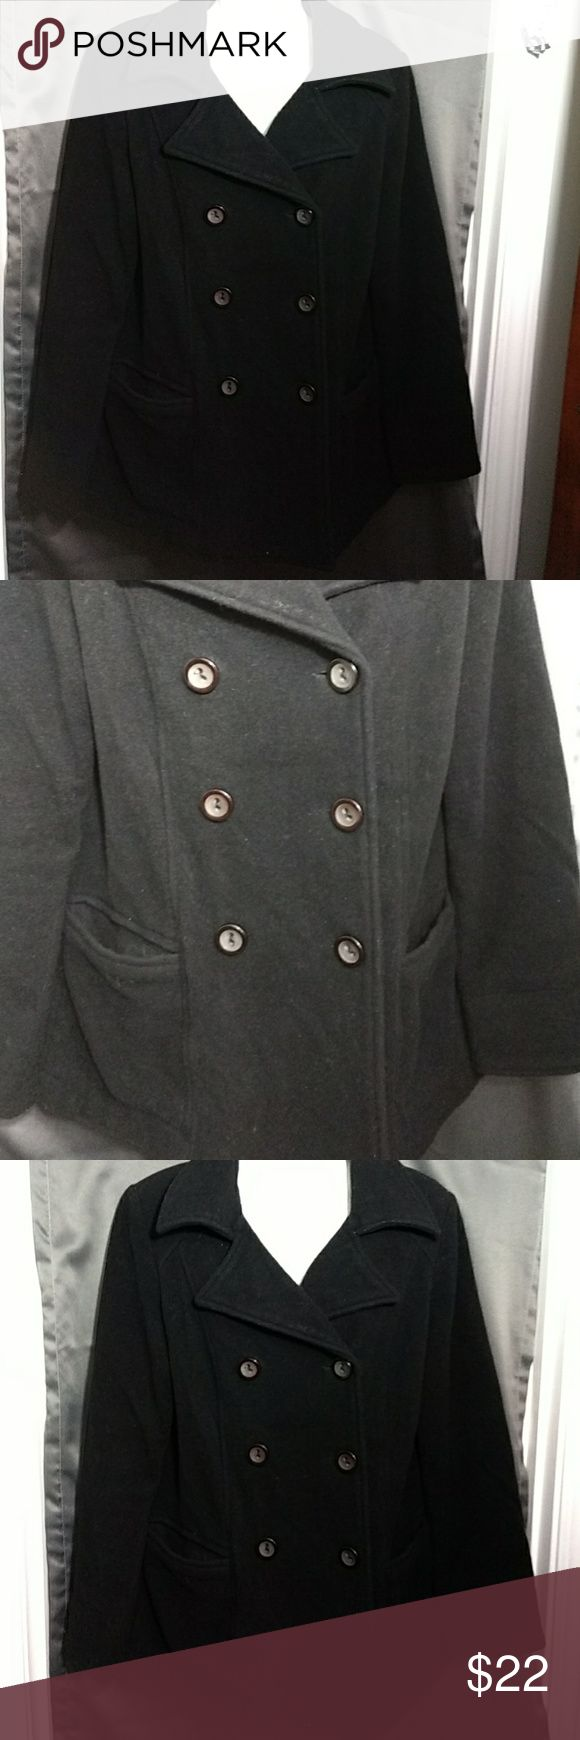 Old Navy Pea Coat Cute black pea coat with 6 buttons down center 3 on each side of chest. 2 buttons on cuffs 4 buttons on decorative belt, on back of coat. Very warm for the winter. Matches everything. Size medium. Old Navy Jackets & Coats Pea Coats